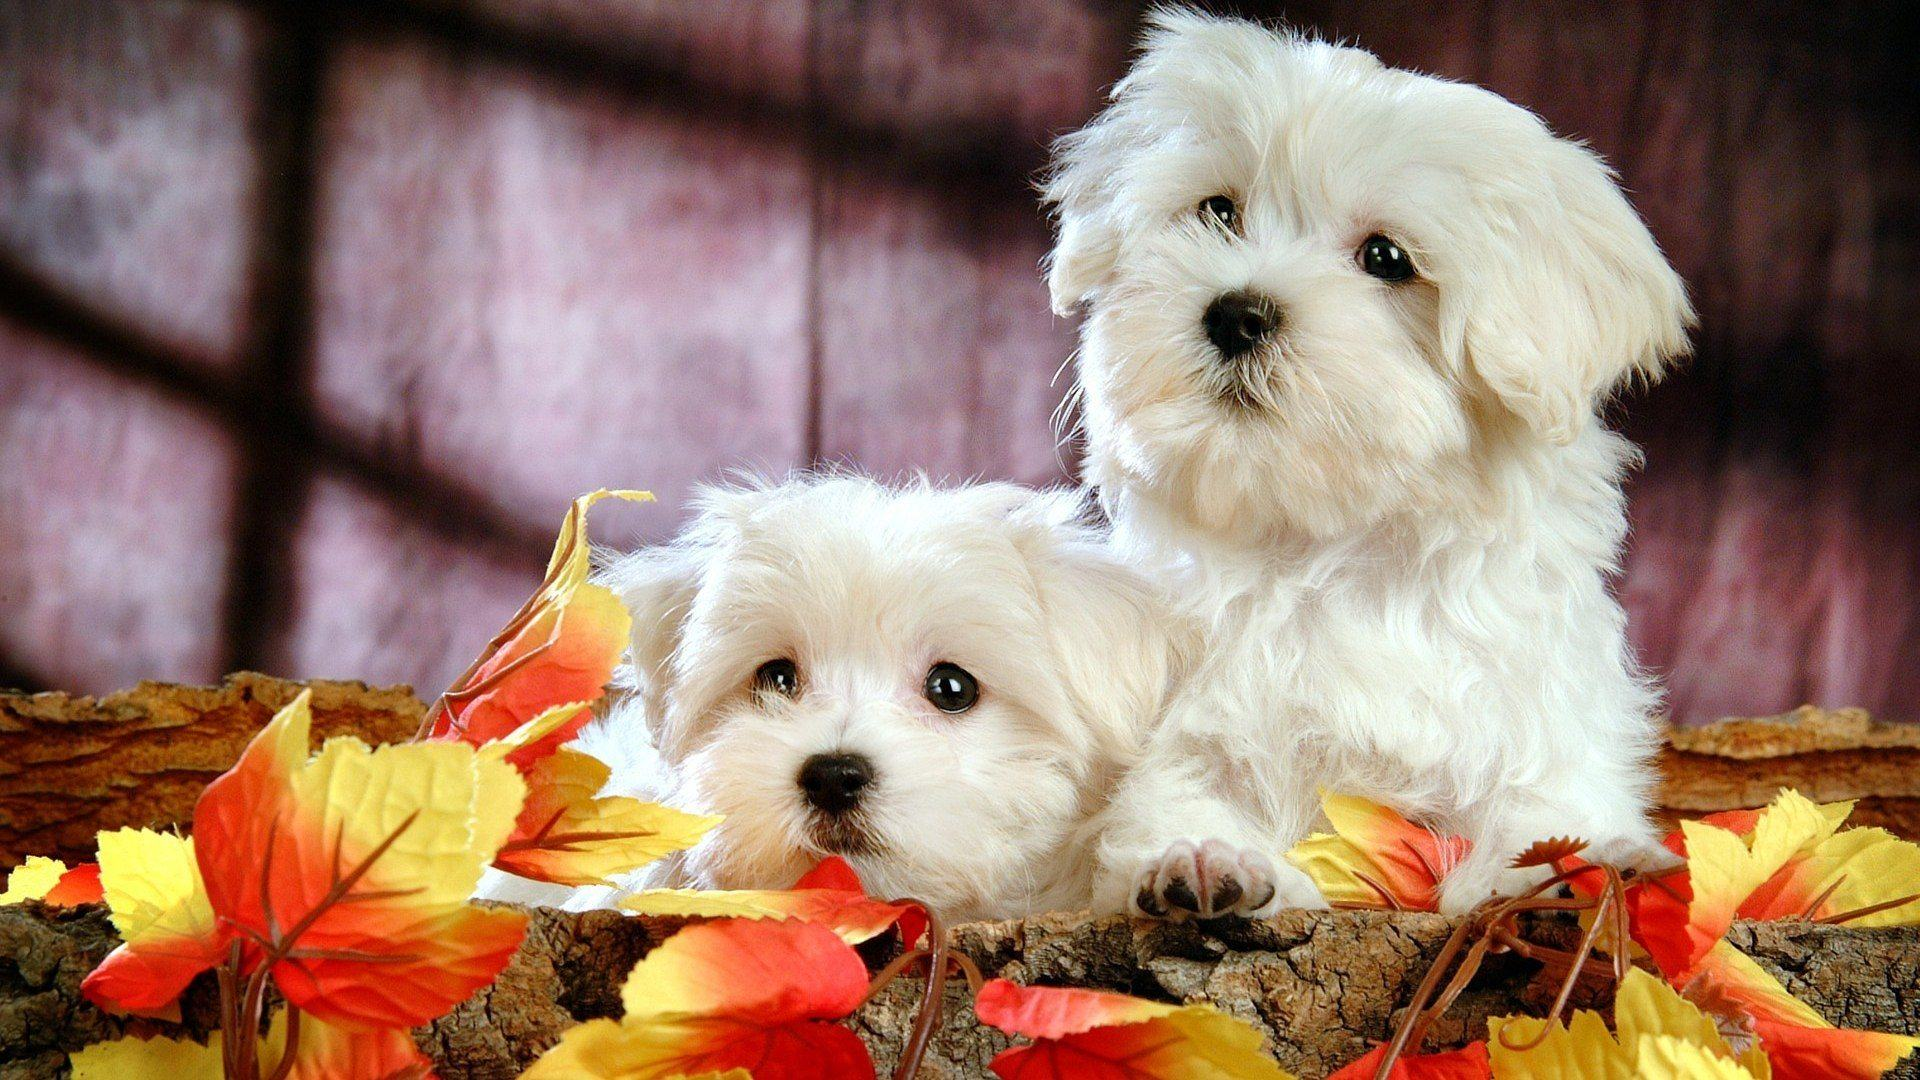 Download Free Wallpapers Backgrounds - Sweet White Puppies Dogs HD Wallpapers